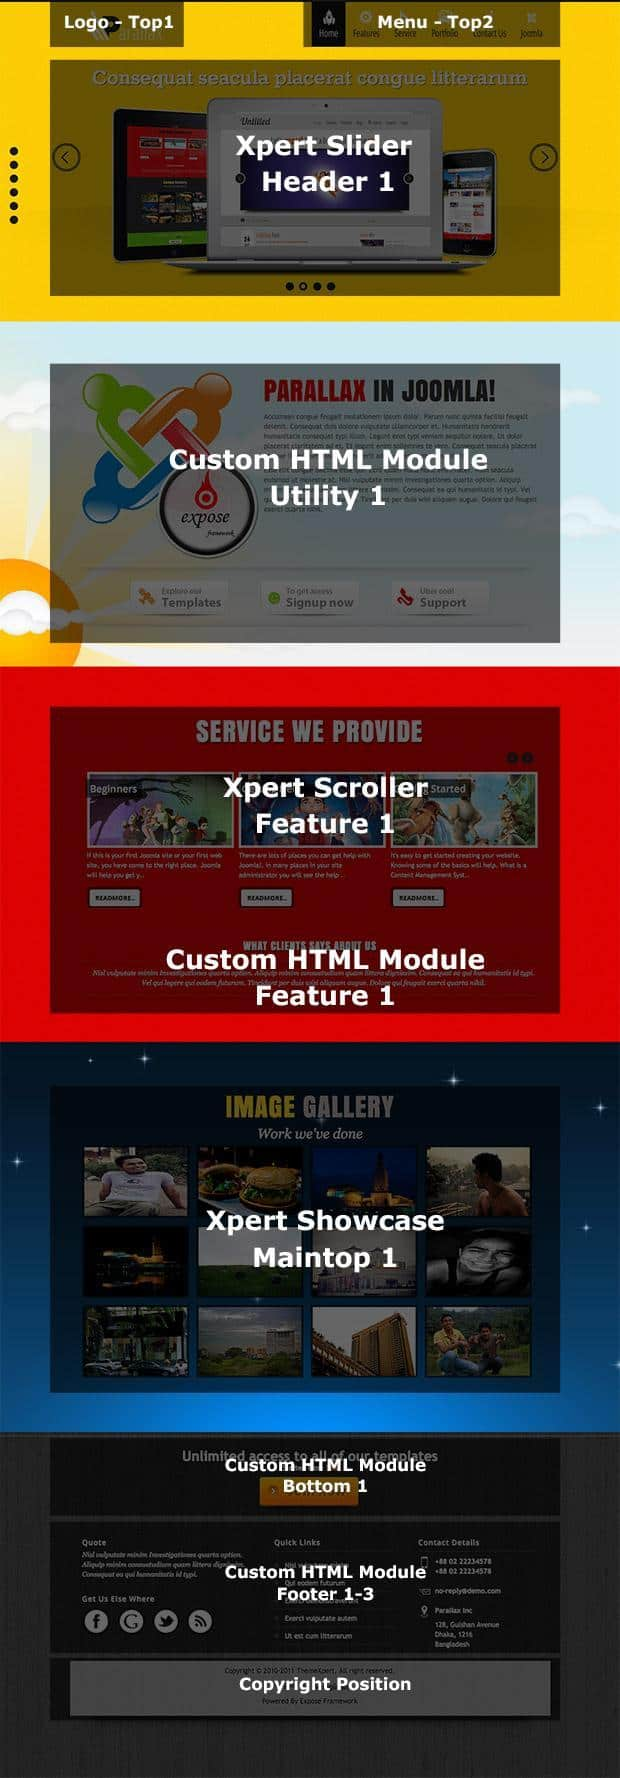 Parallax homepage